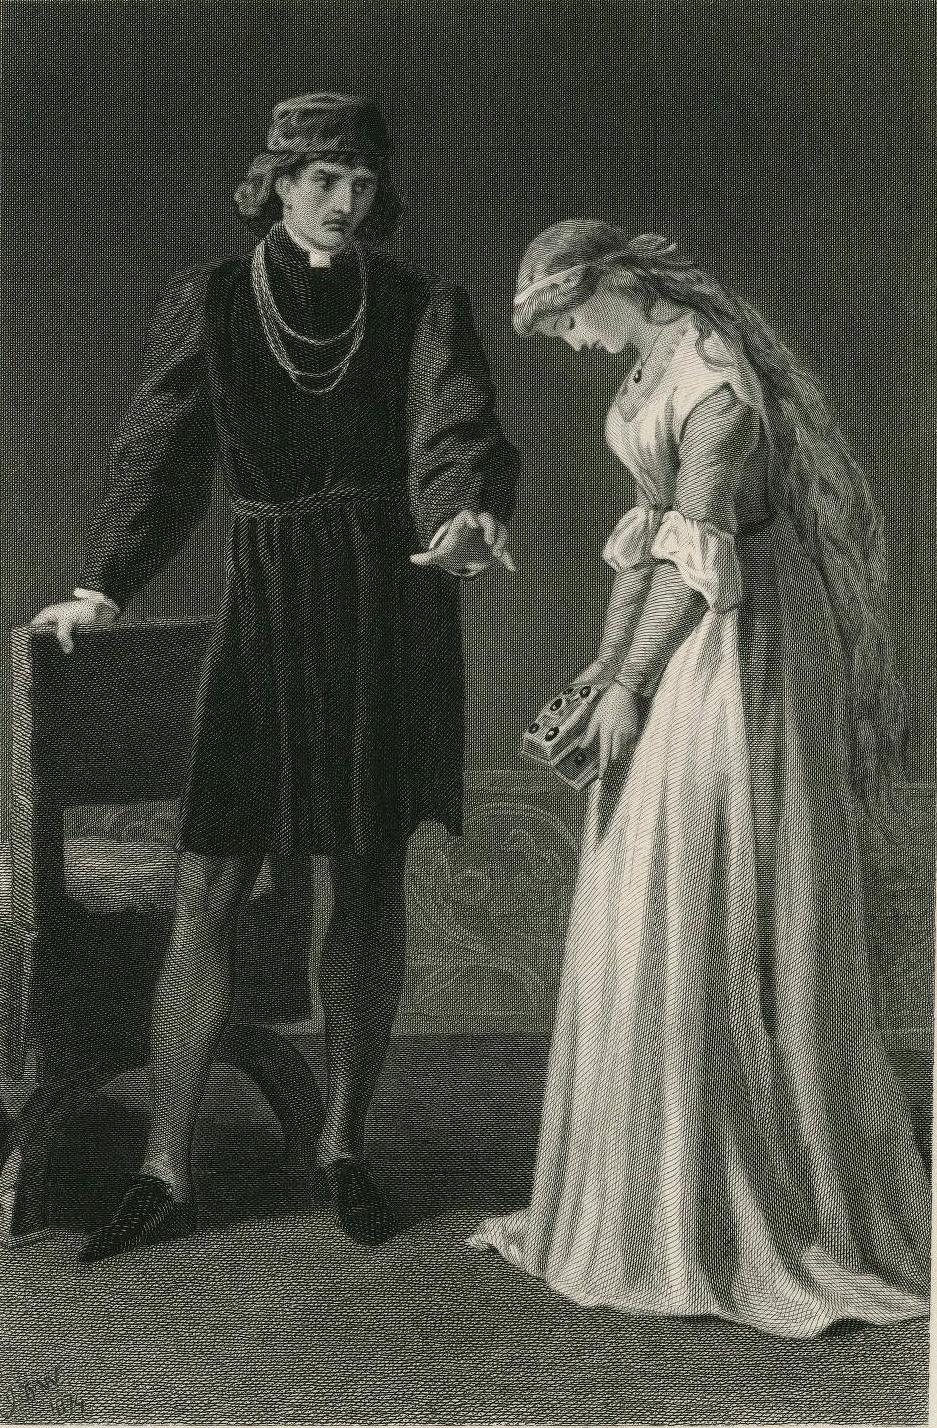 an analysis of the character ophelia in hamlet by william shakespeare The ghost: the spirit of hamlet's murdered father which is in a state of unrest due to perishing without the sacrament and extreme unction polonius: denmark's lord chamberlain, he is claudius' stooge, a busybody, and the father of laertes and ophelia.